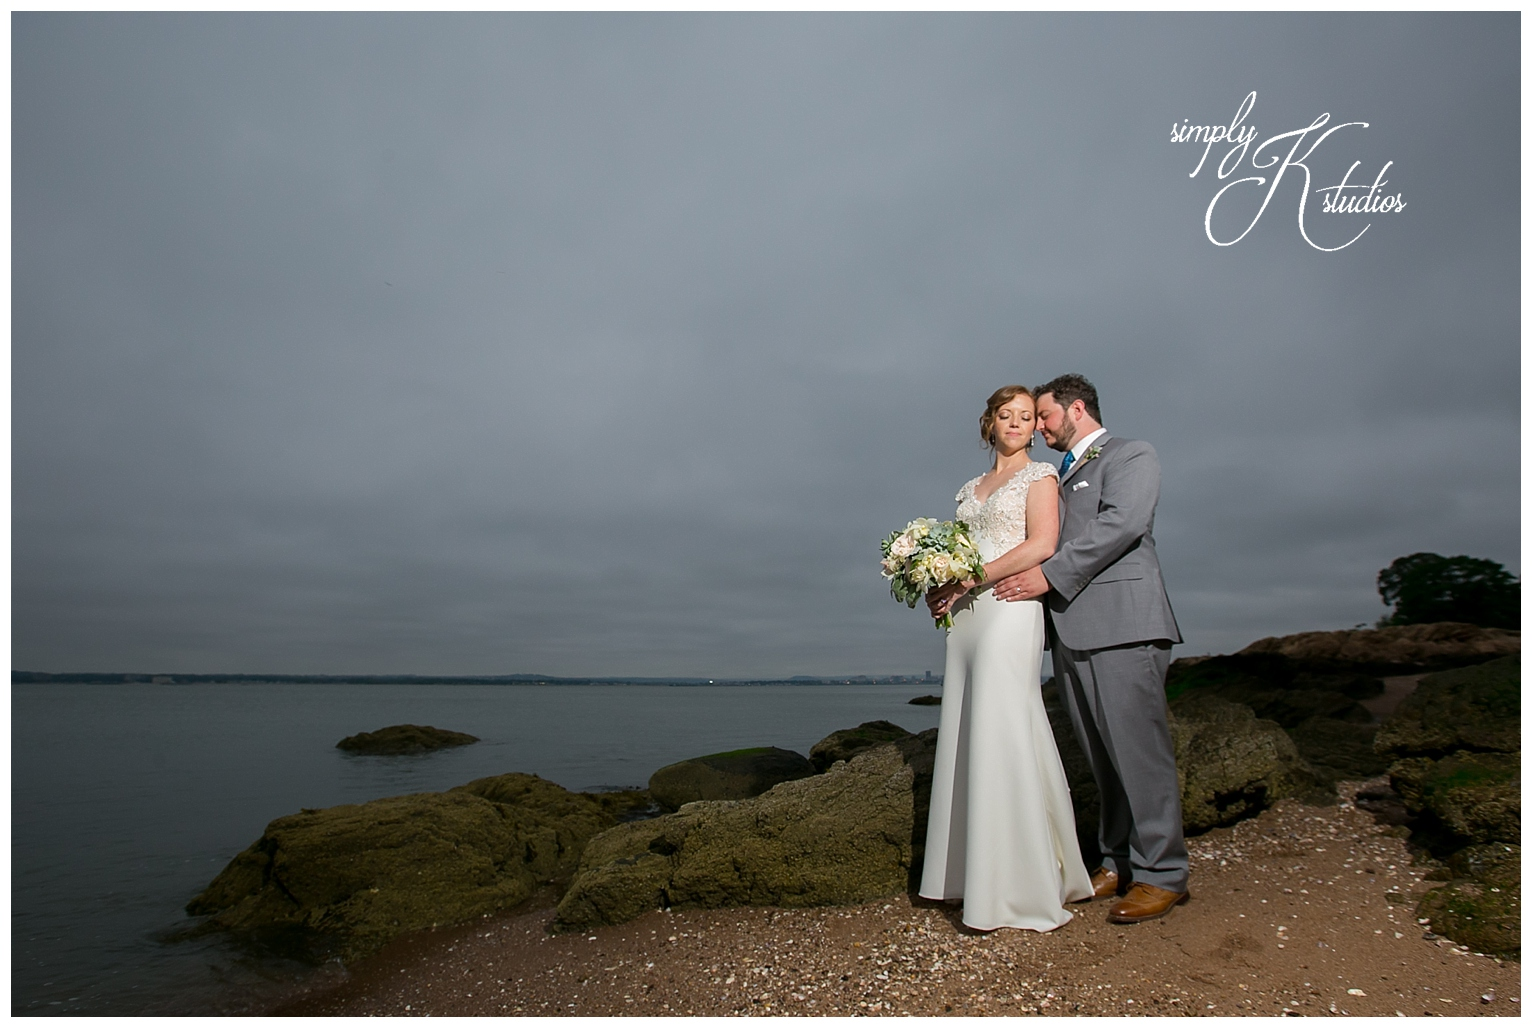 Dark and Moody Wedding Photography in Connecticut.jpg